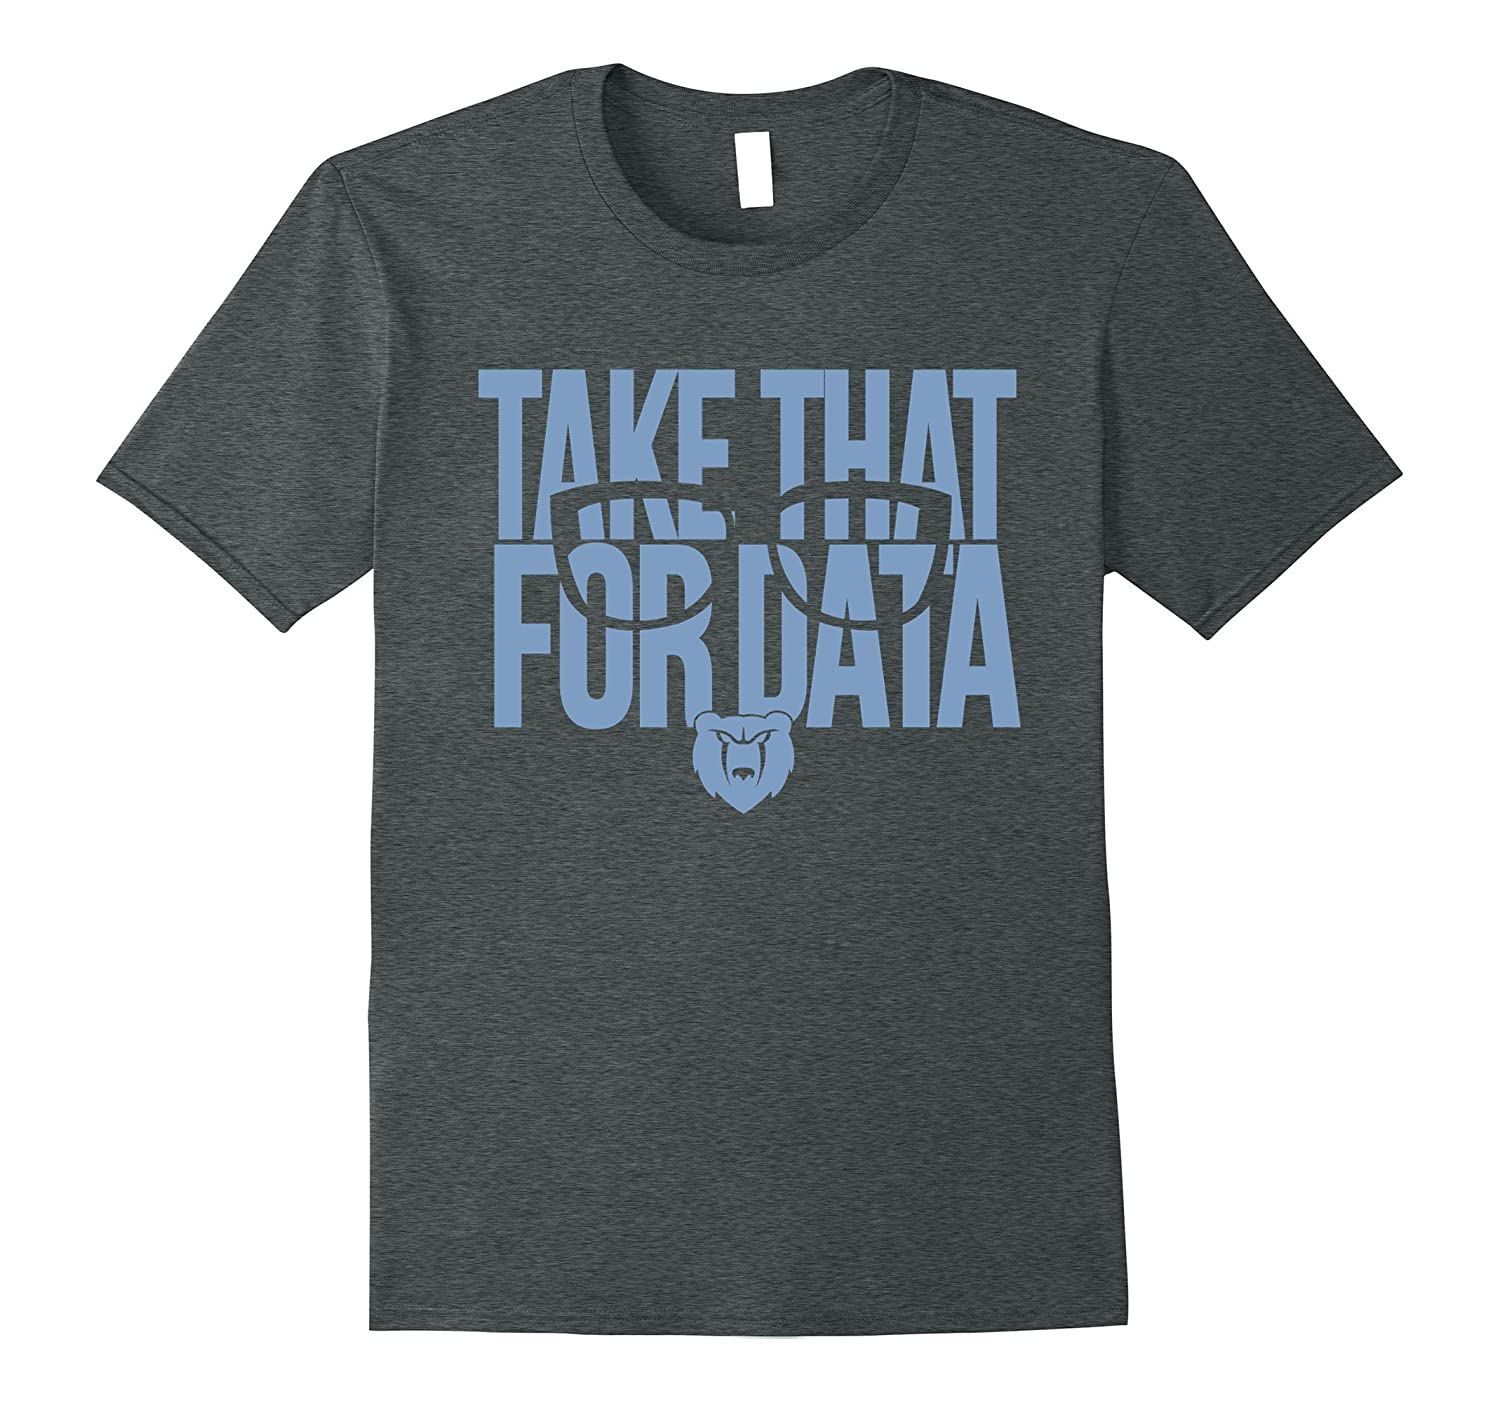 Take That For Data T-Shirt-Vaci